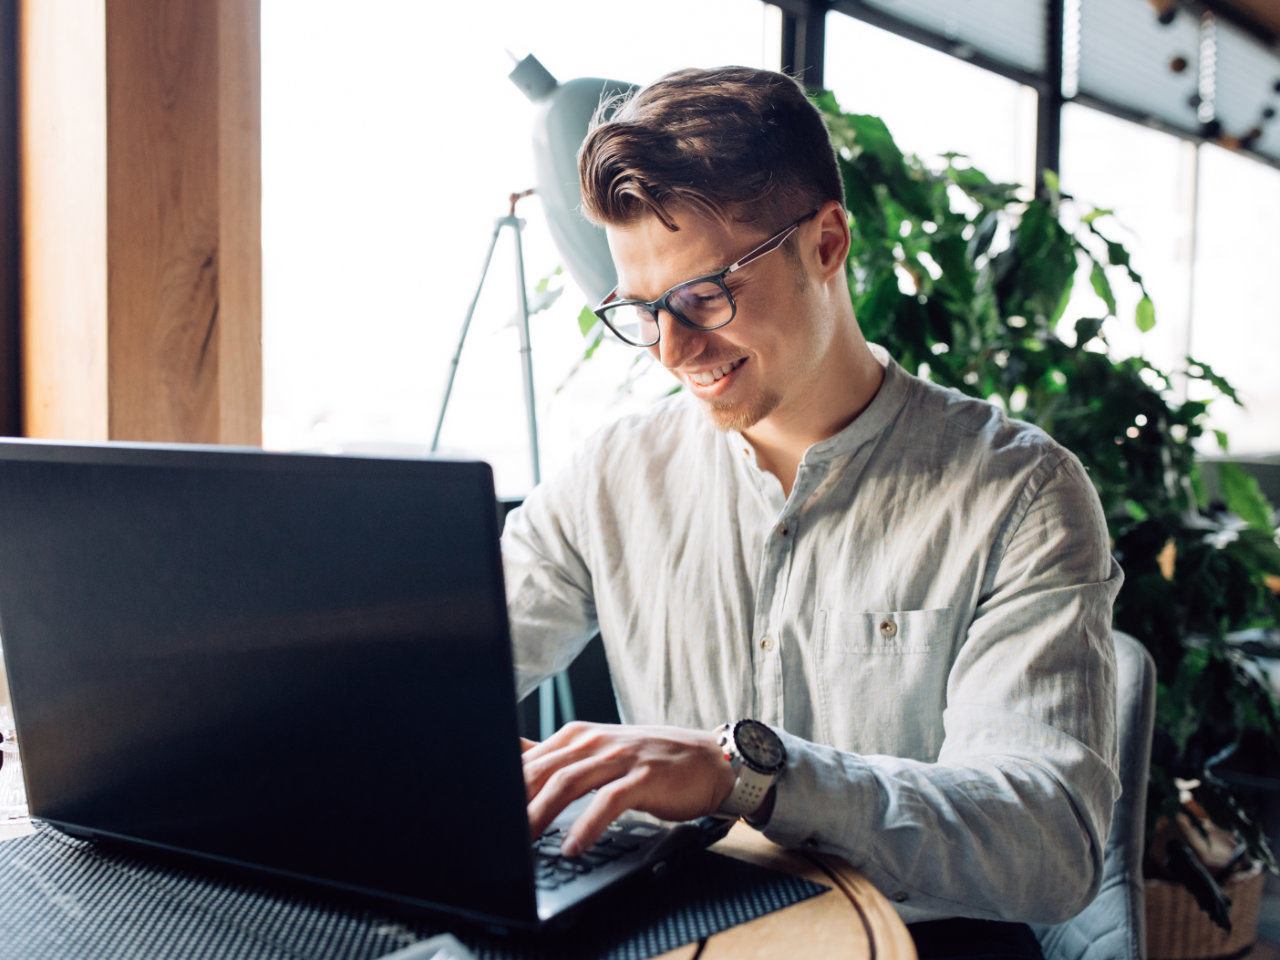 Attractive smiling businessman in eyeglasses working on laptop, typing, spending time at cafe. Dressed in white shirt.